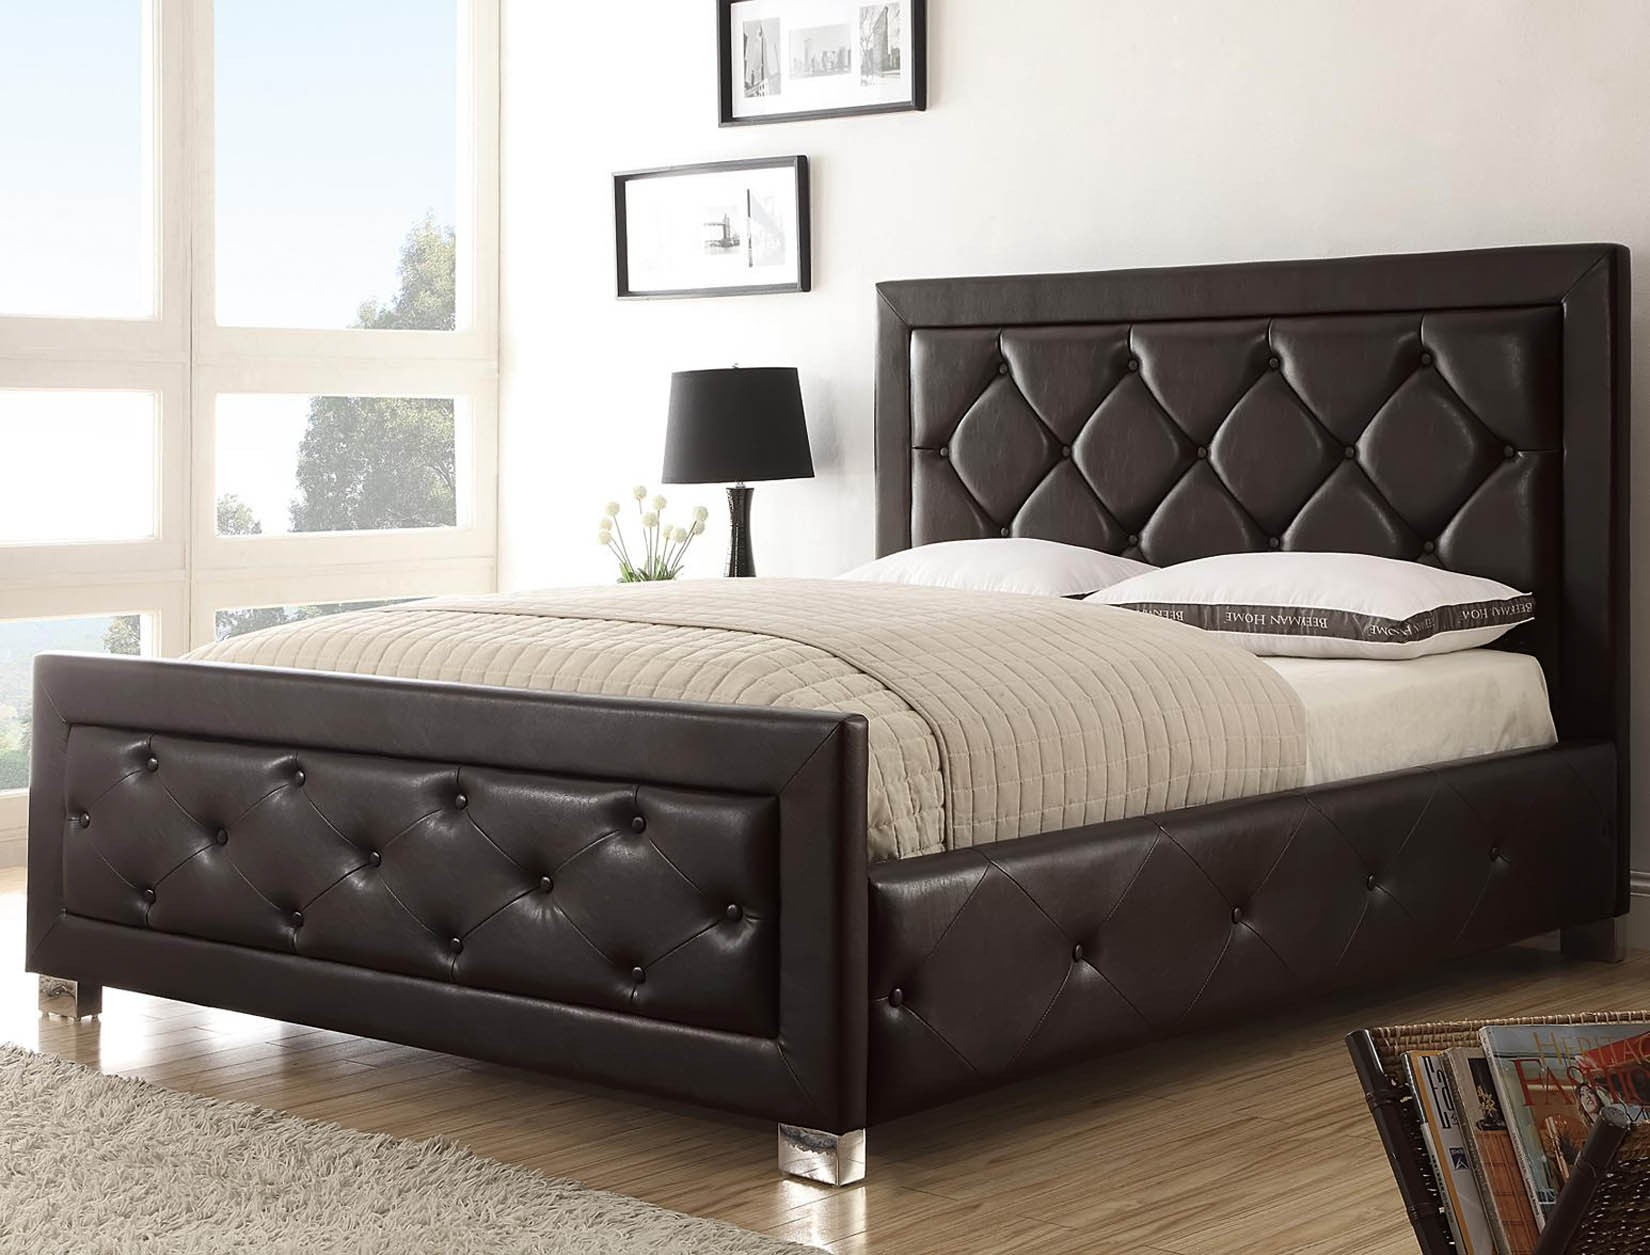 Elegant Upholstered Headboards (Image 6 of 10)